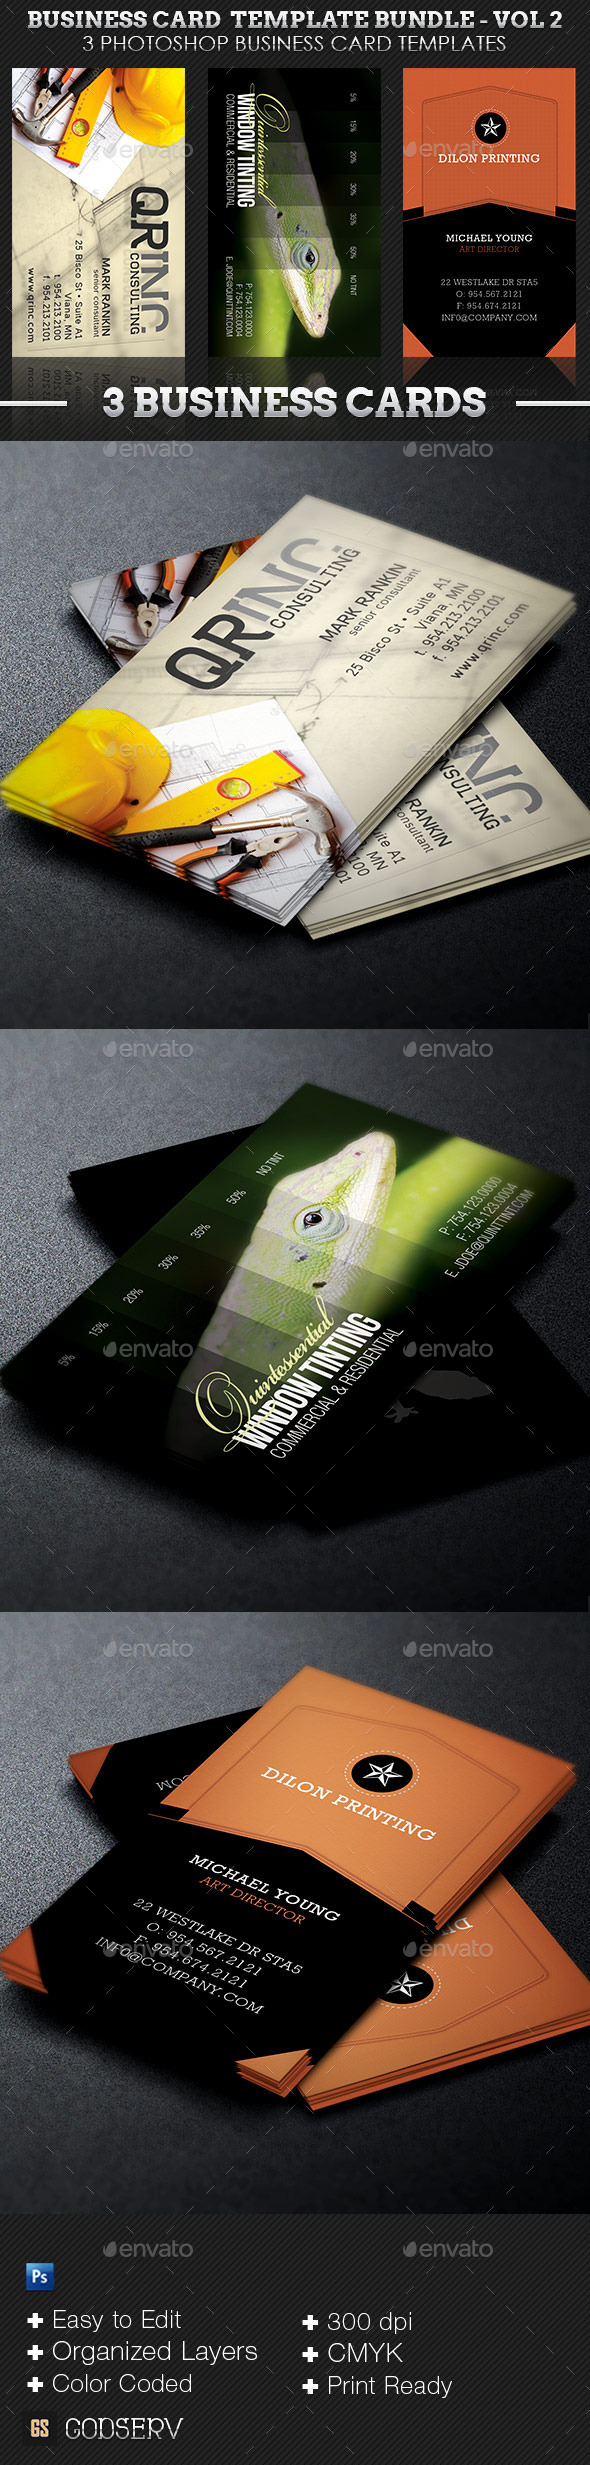 Business Card Template Bundle Volume 2